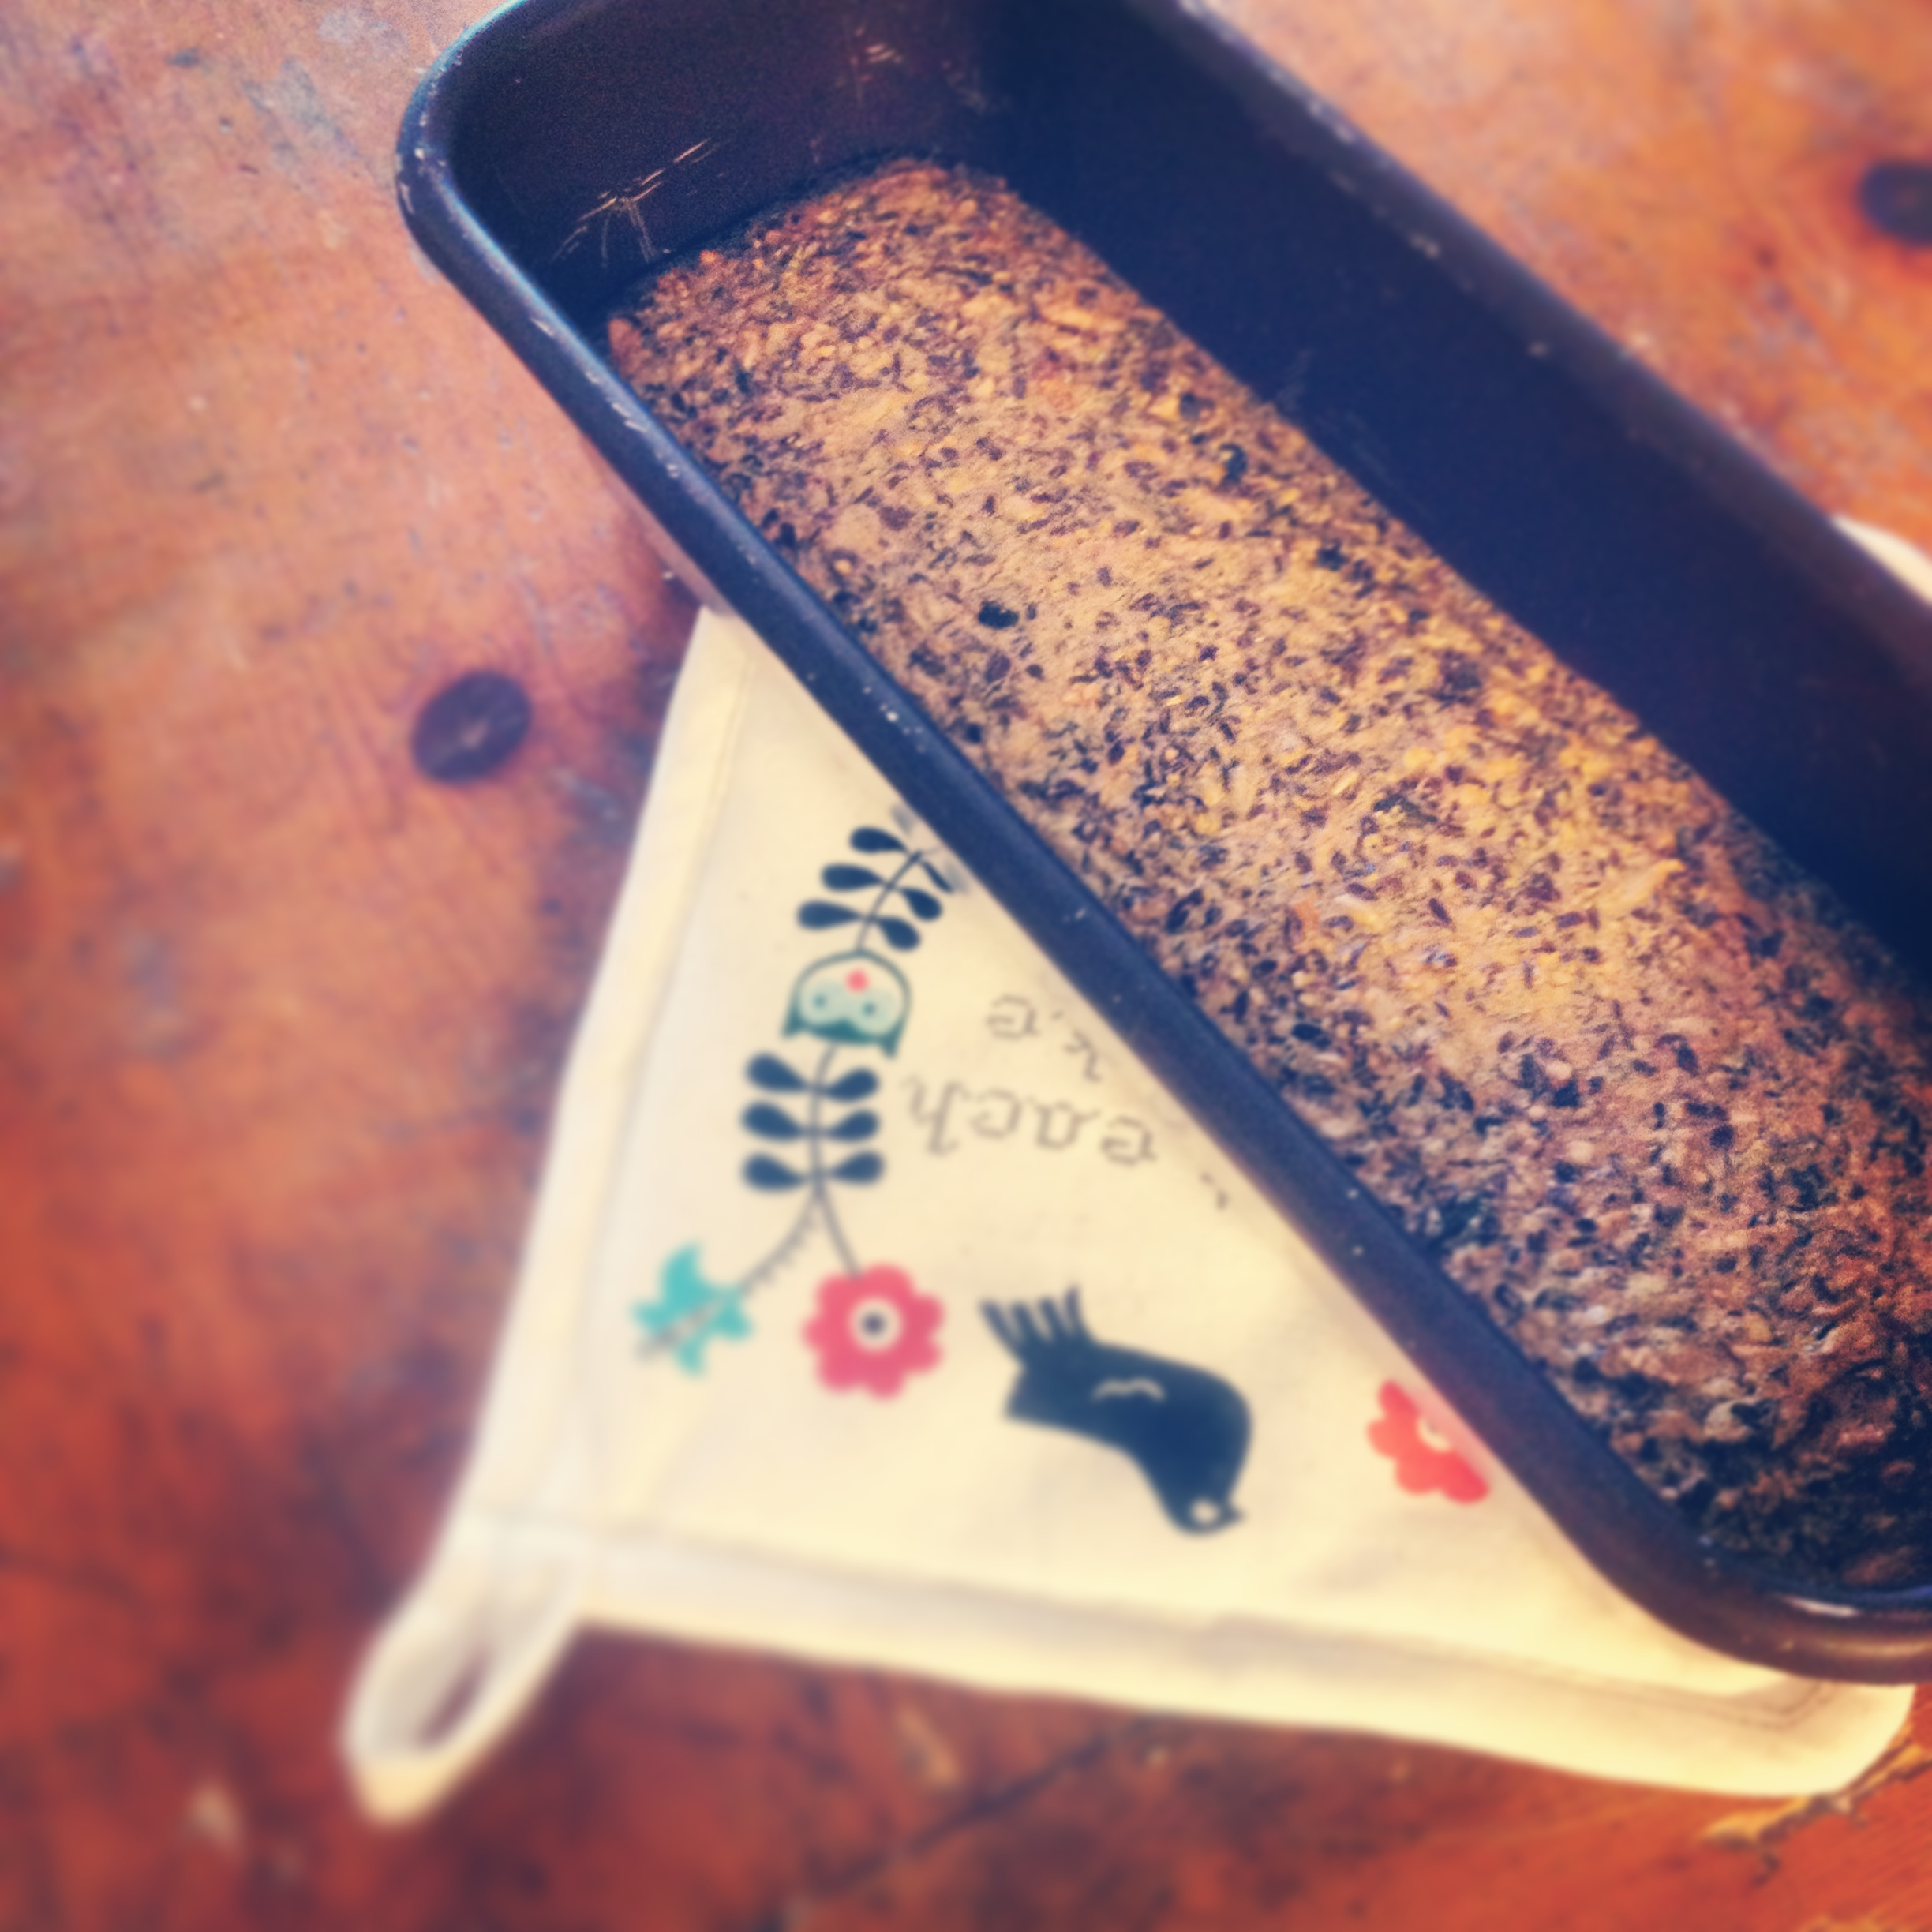 Recipe: Low carb protein bread | fructose friednly